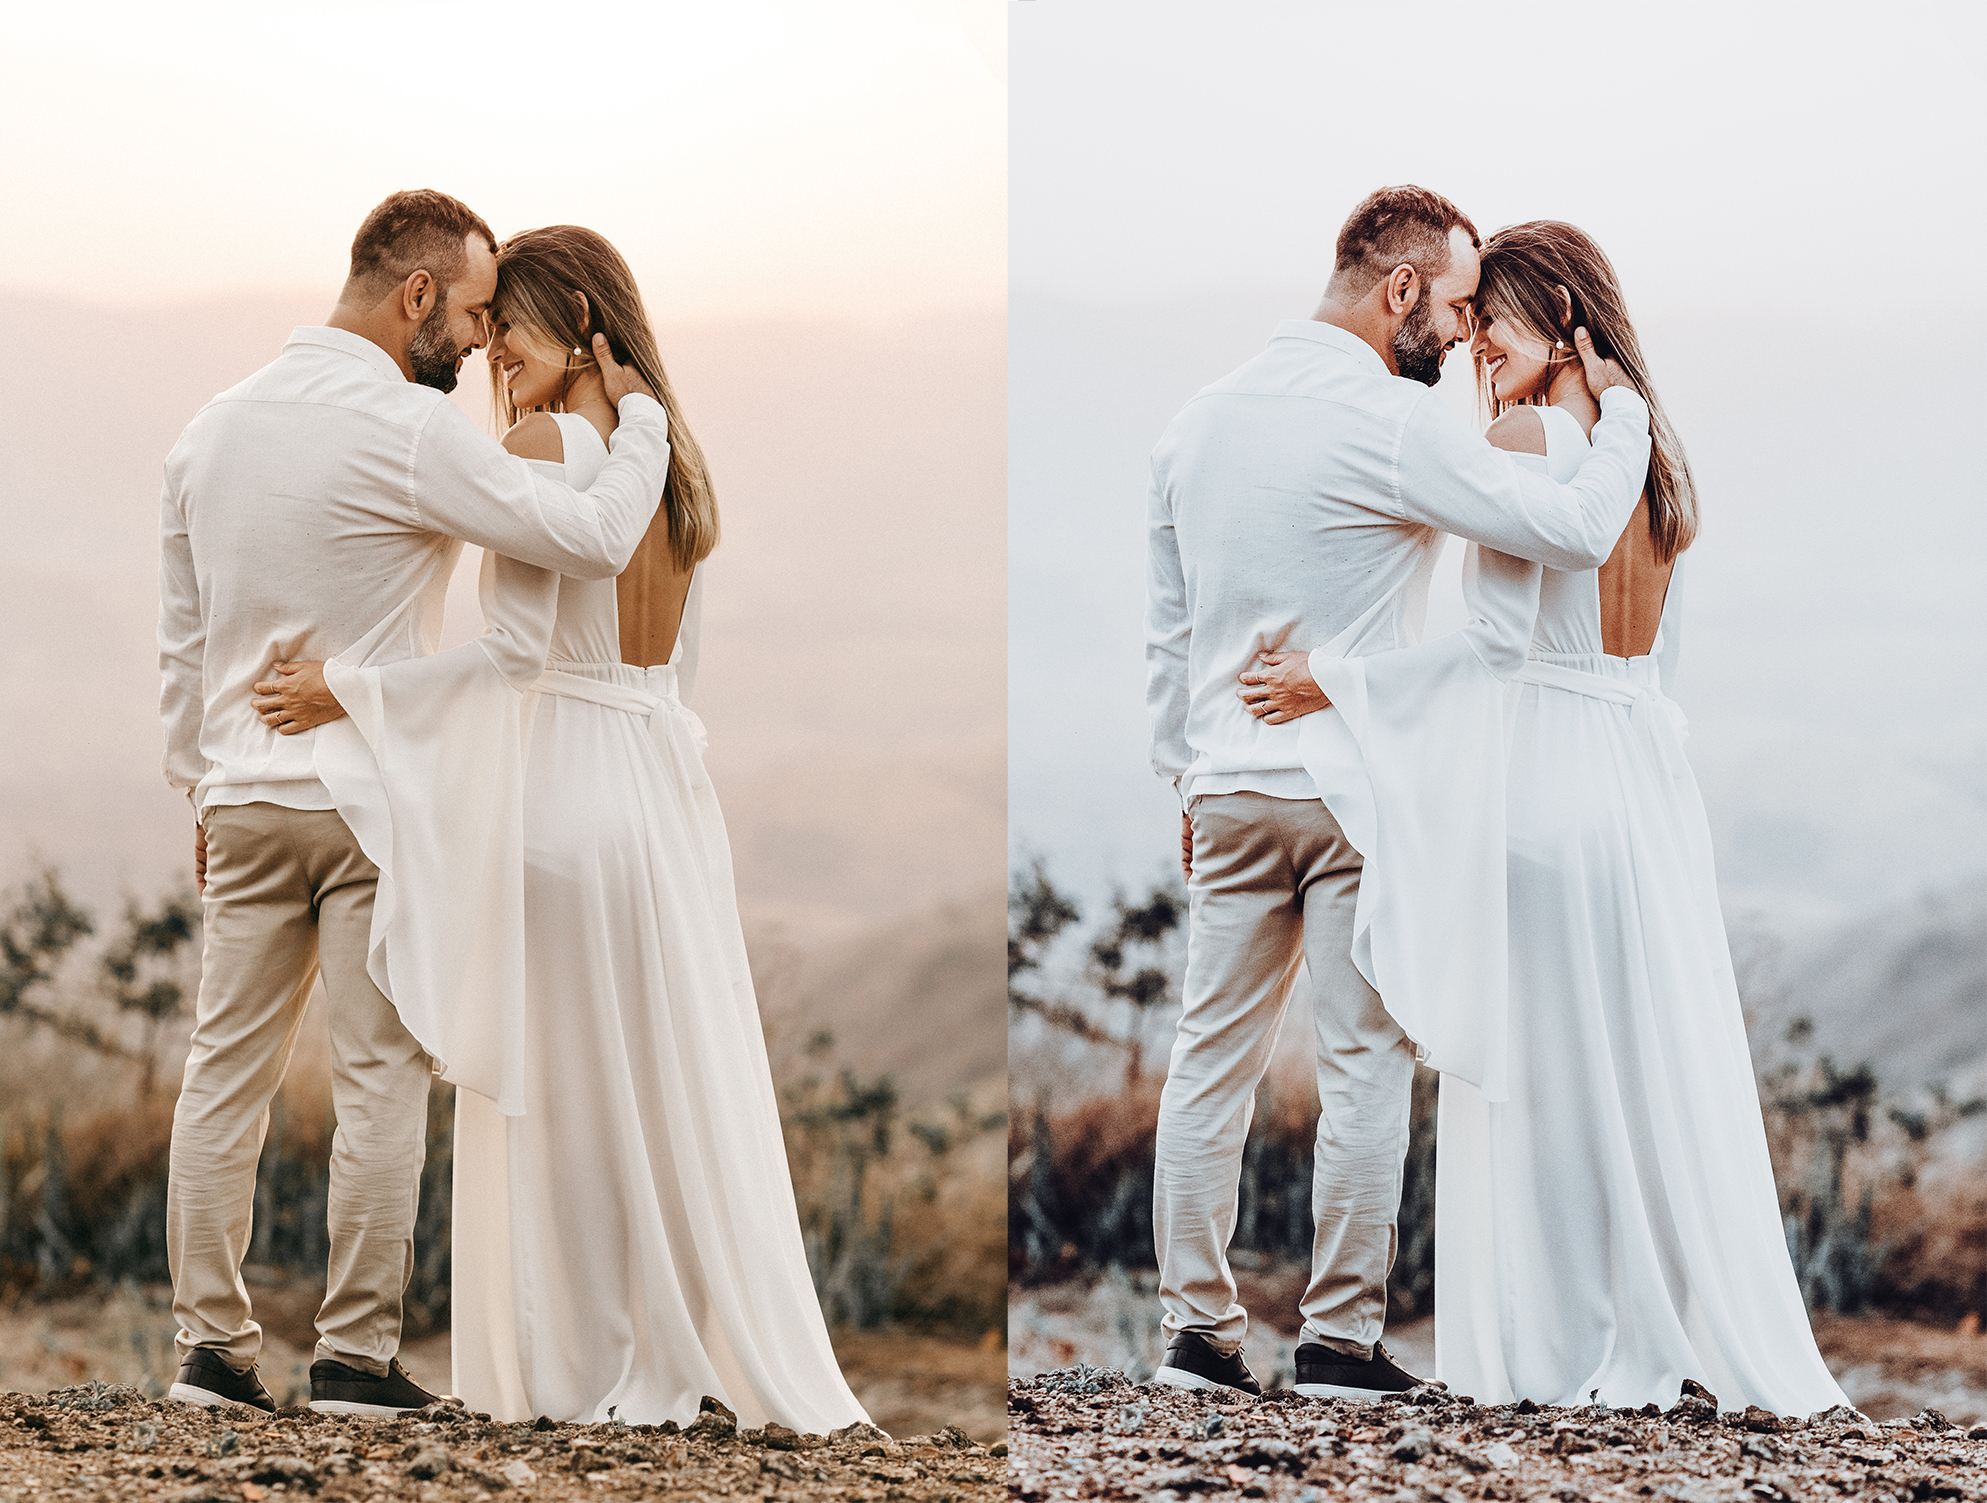 Rustic Wedding Lightroom Presets Collection Ideal For